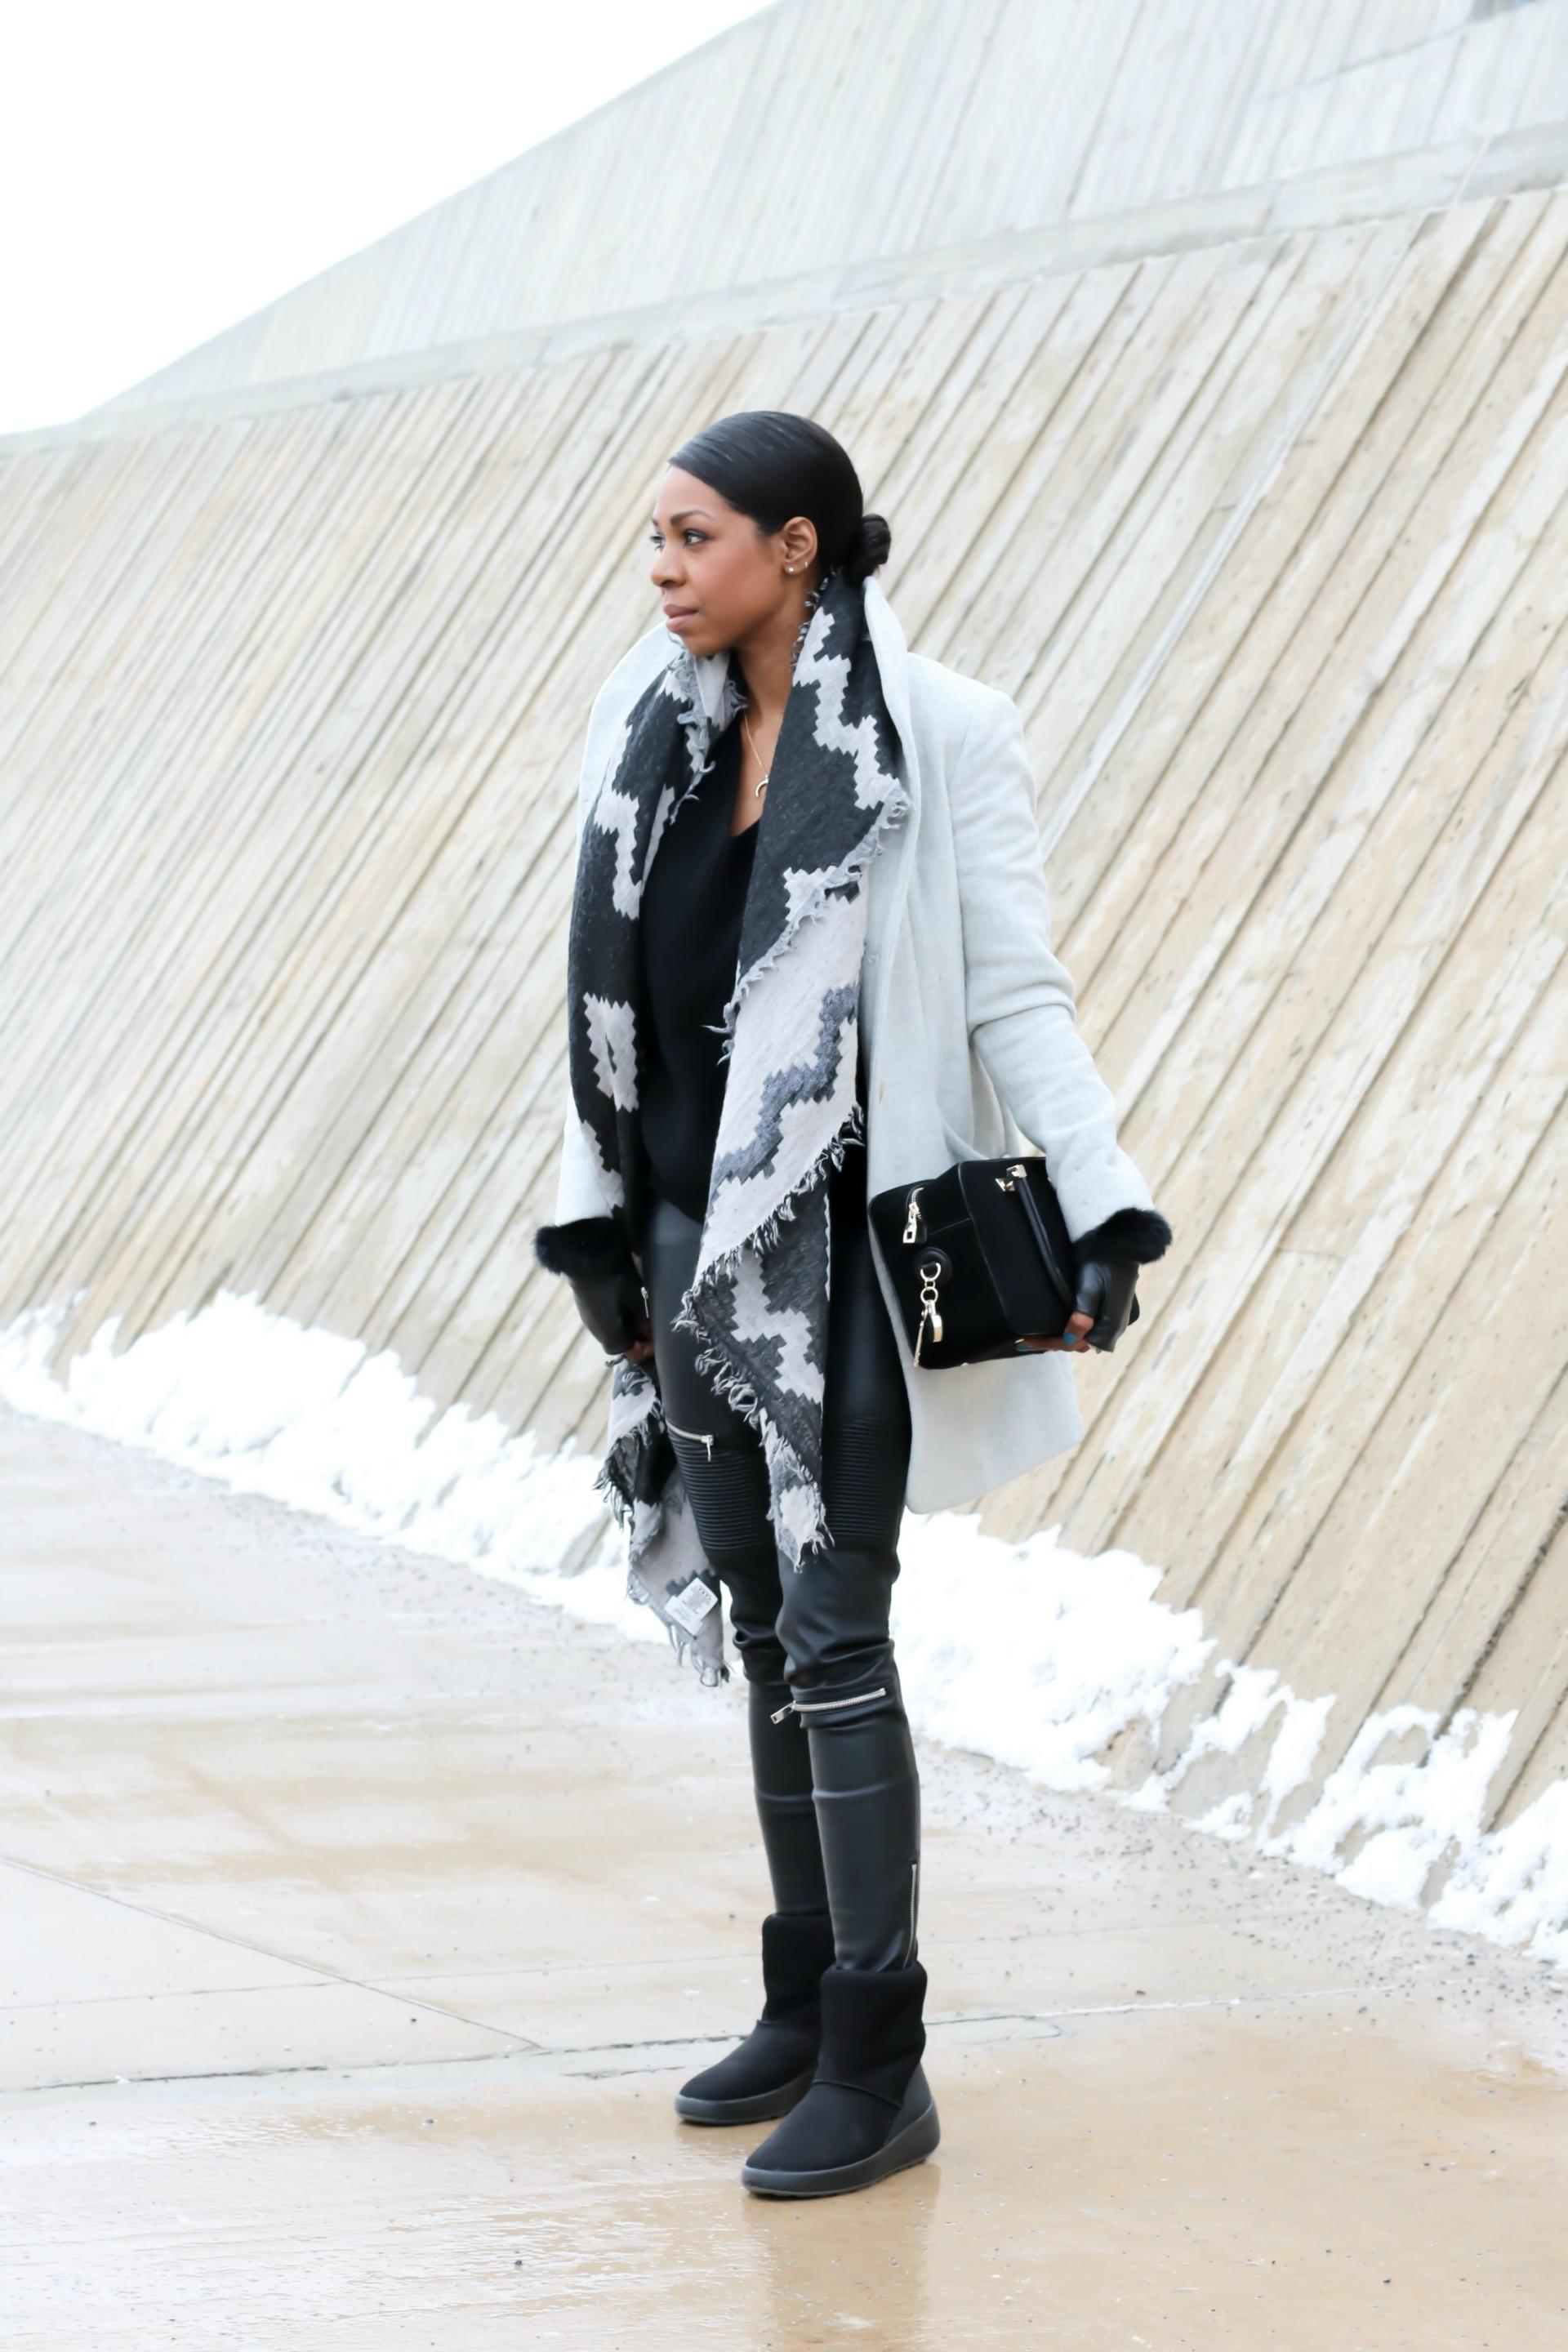 Image of Dom wearing a grey wool coat and black leather pants holding a suede purse on a cold winter's day